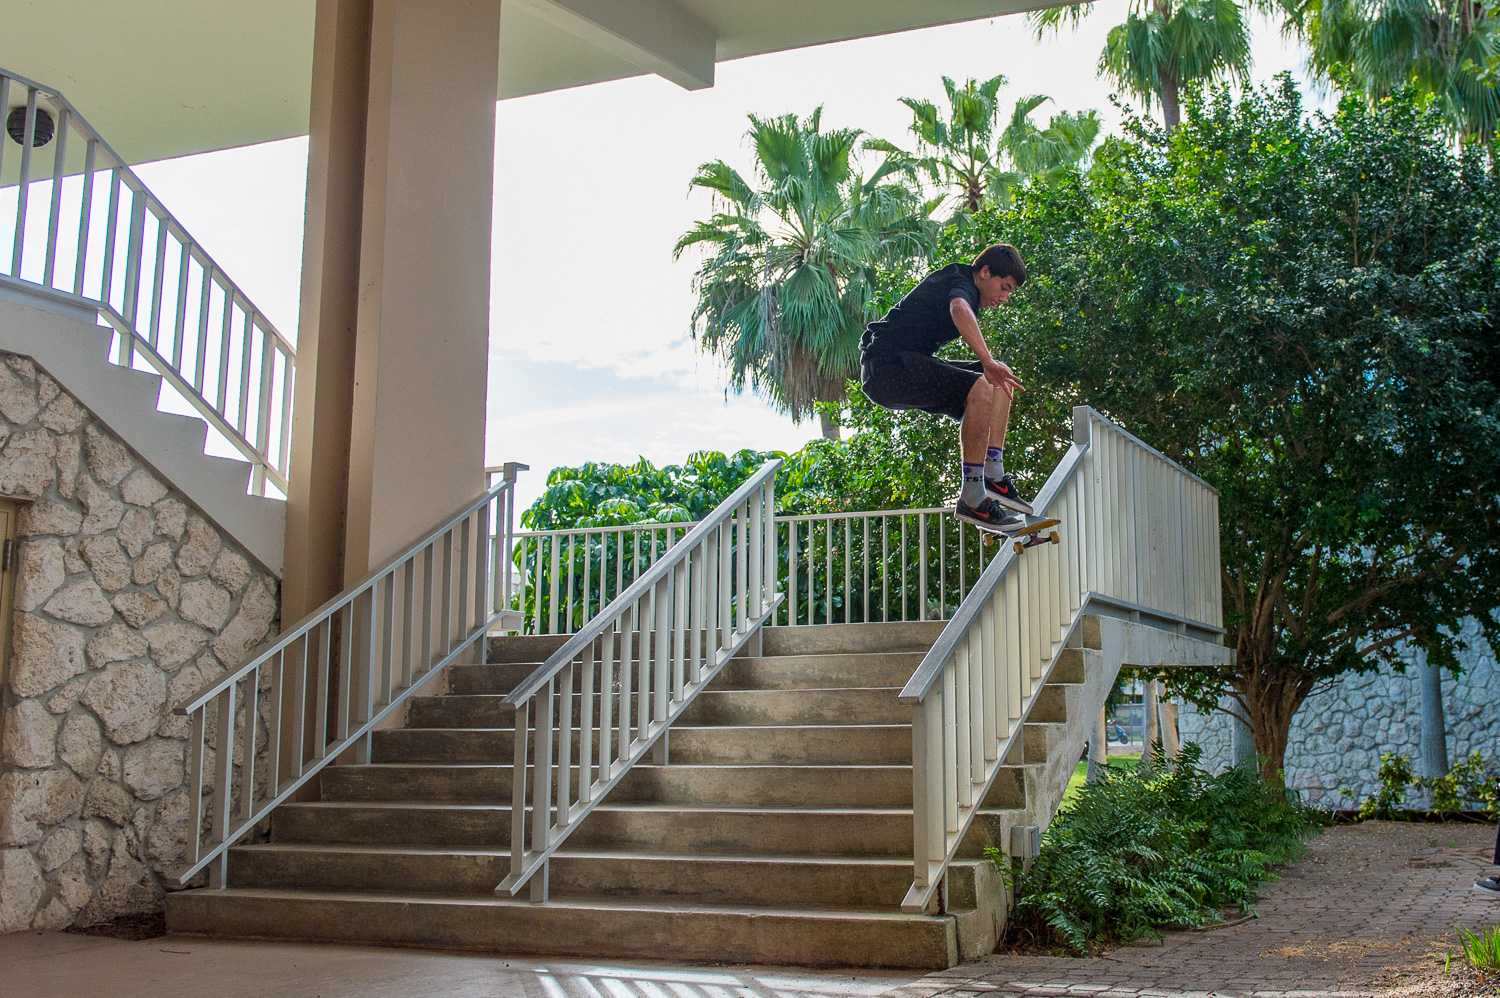 A student from Henderson Middle School on FAU's campus attempts a trick on his skateboard in the breezeway.